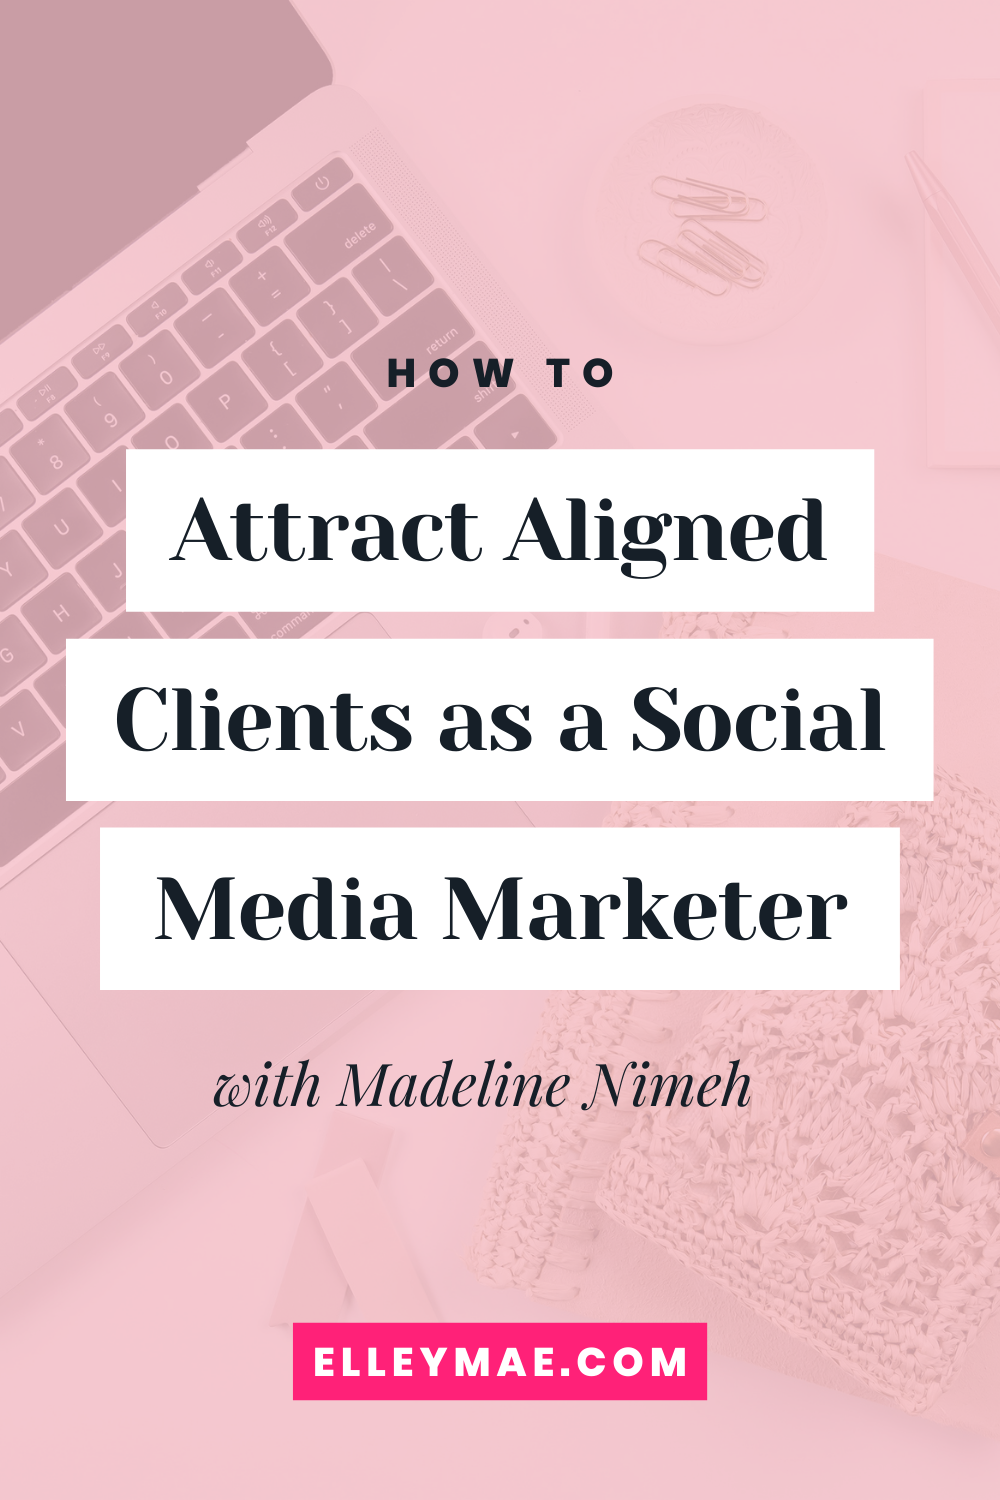 080. Attracting Aligned Clients as a Social Media Manager with Madeline Nimeh